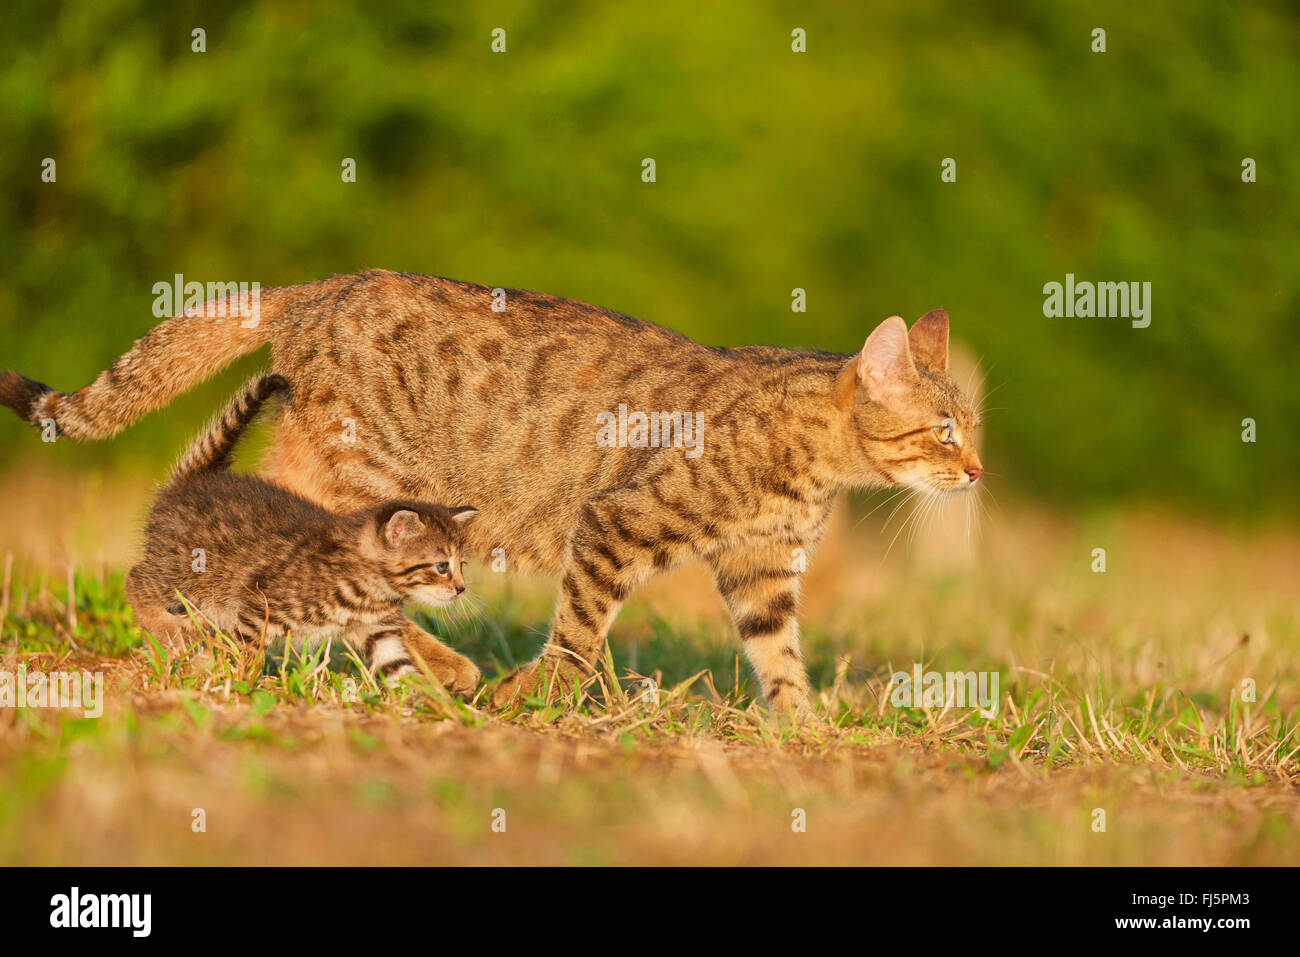 domestic cat, house cat (Felis silvestris f. catus), cat with kitten in a meadow, side view, Germany - Stock Image